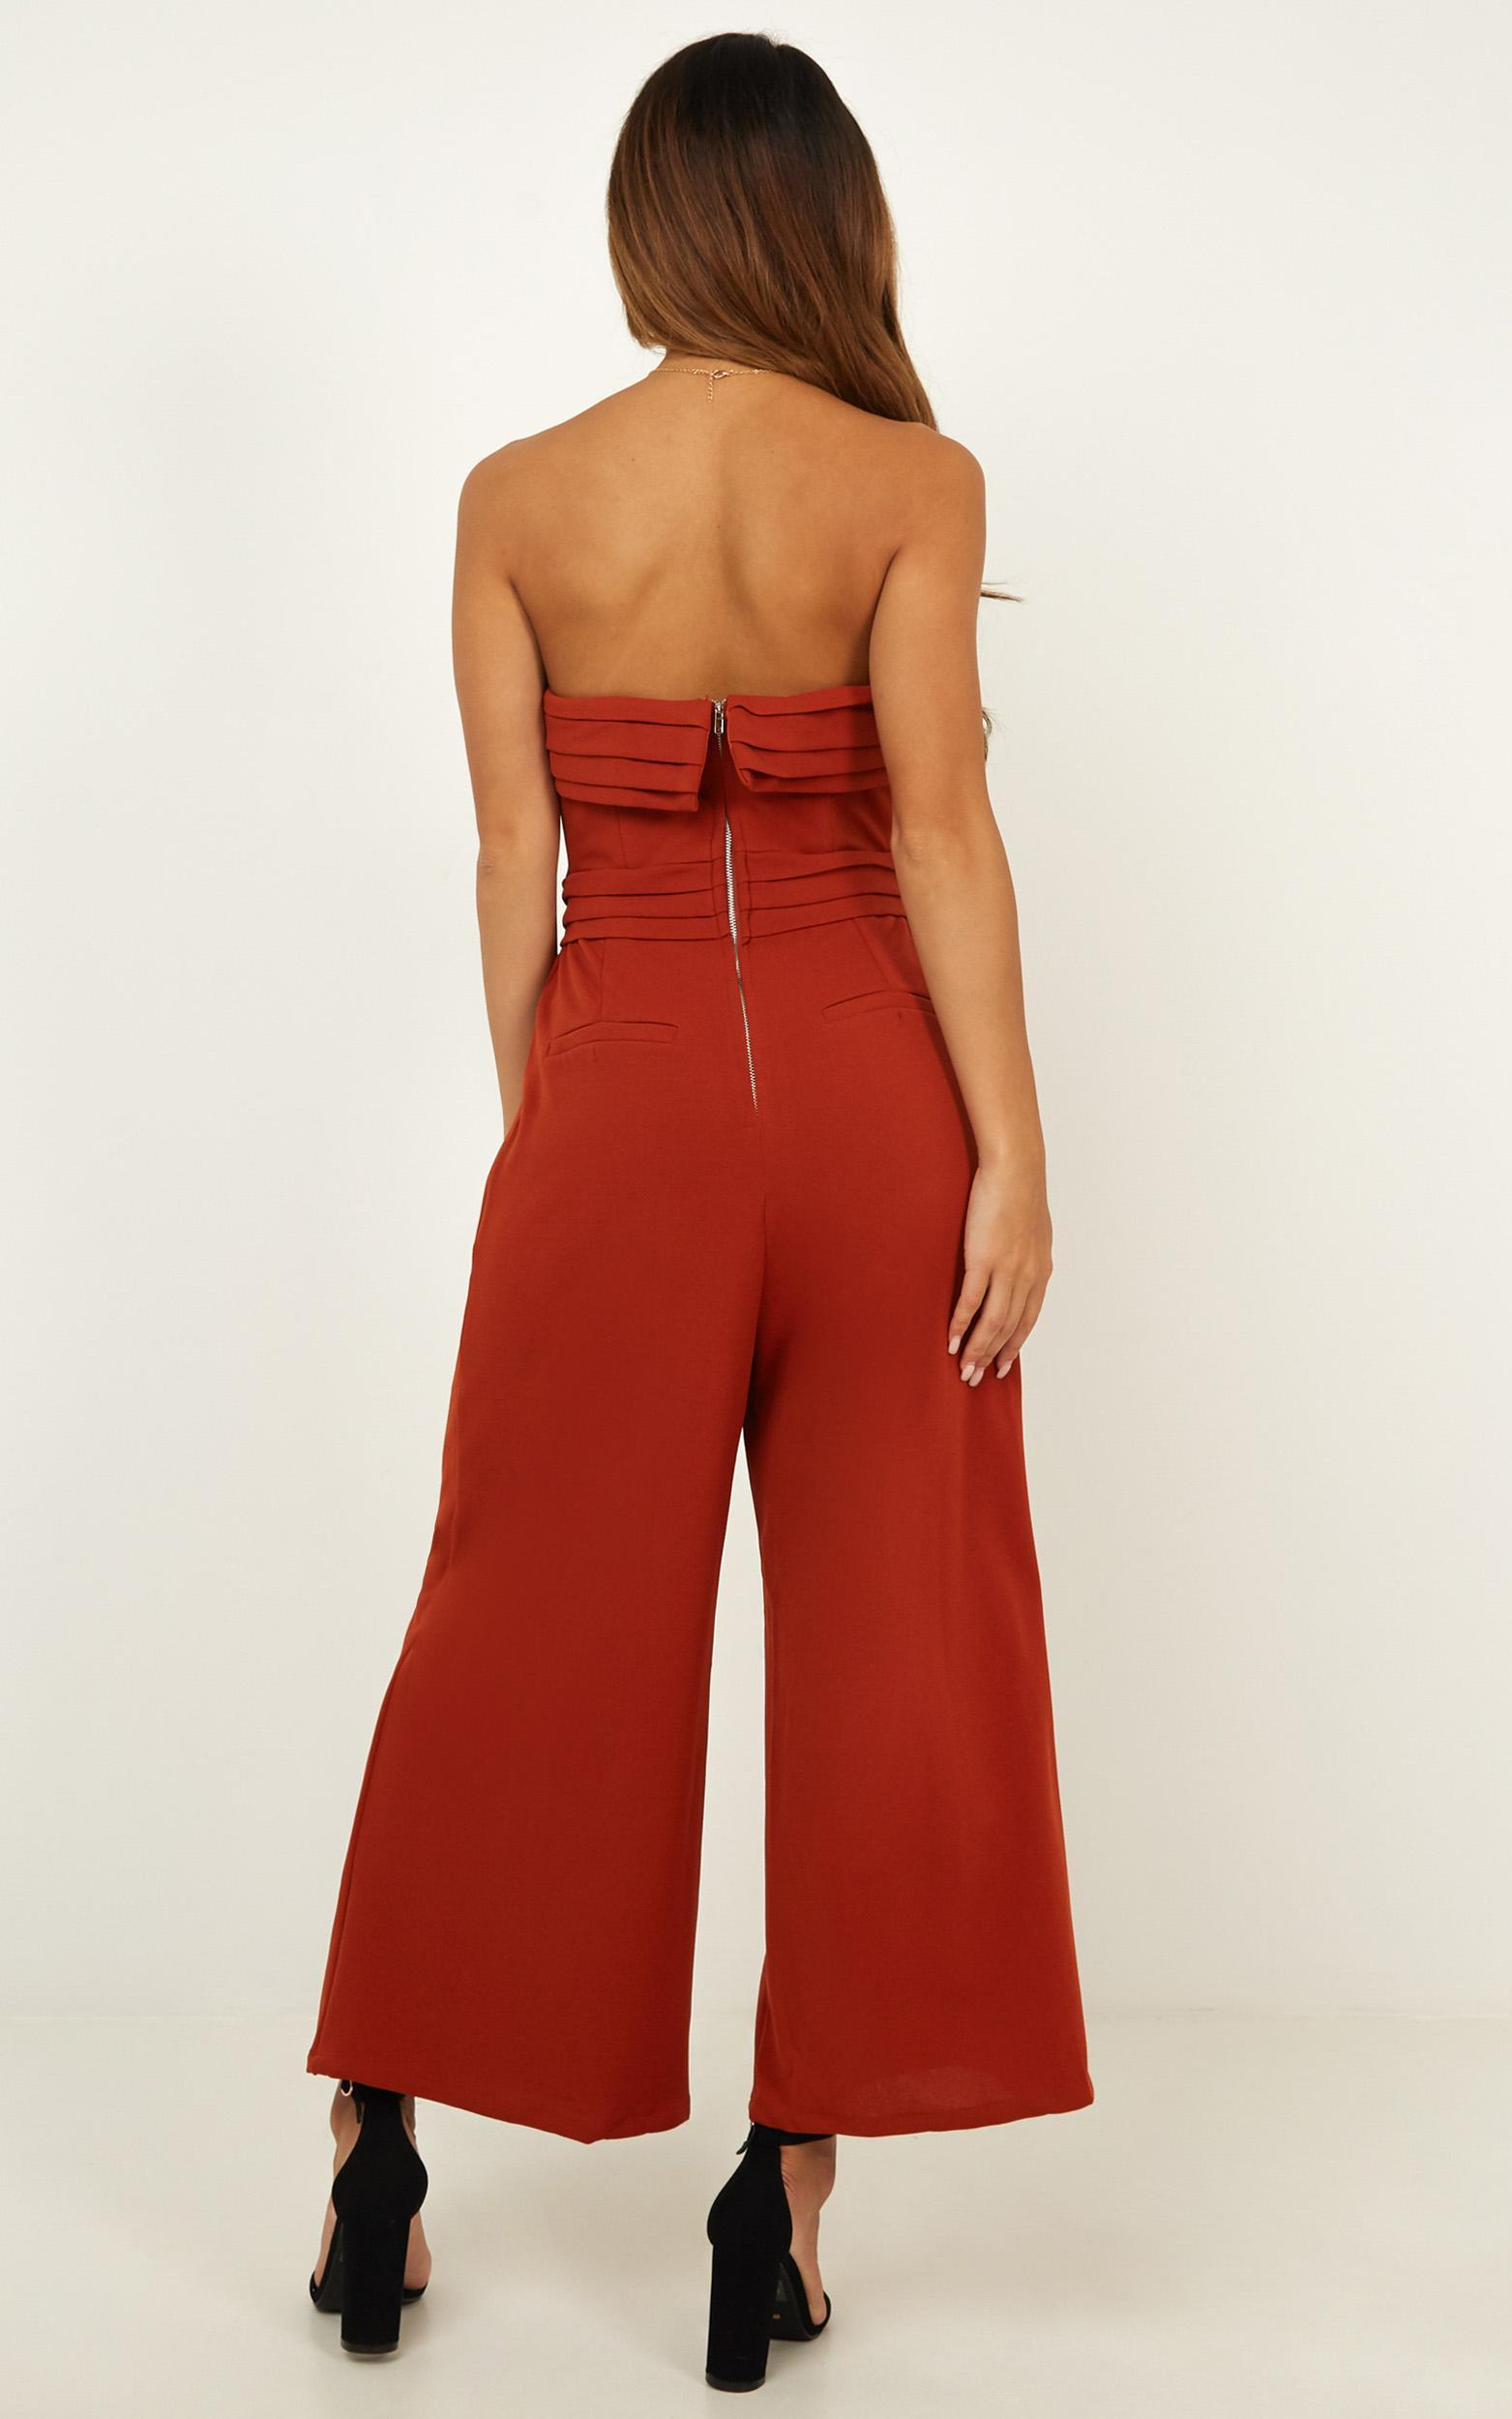 Up Ahead jumpsuit in rust - 14 (XL), Rust, hi-res image number null